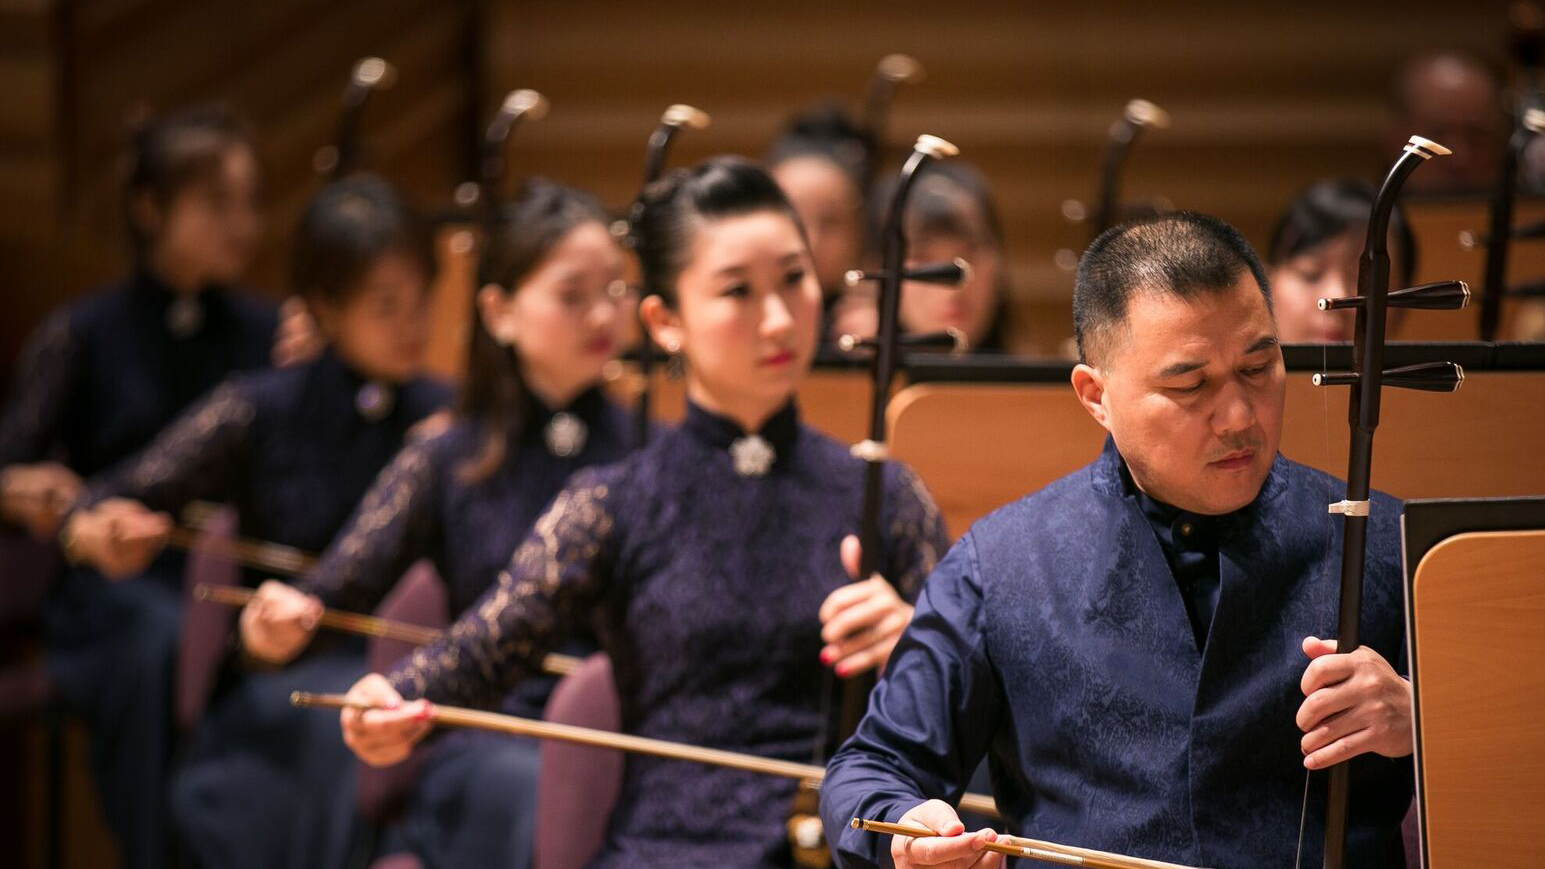 Muhai Tang conducts the Shanghai Chinese Orchestra in a colorful program of traditional Chinese music